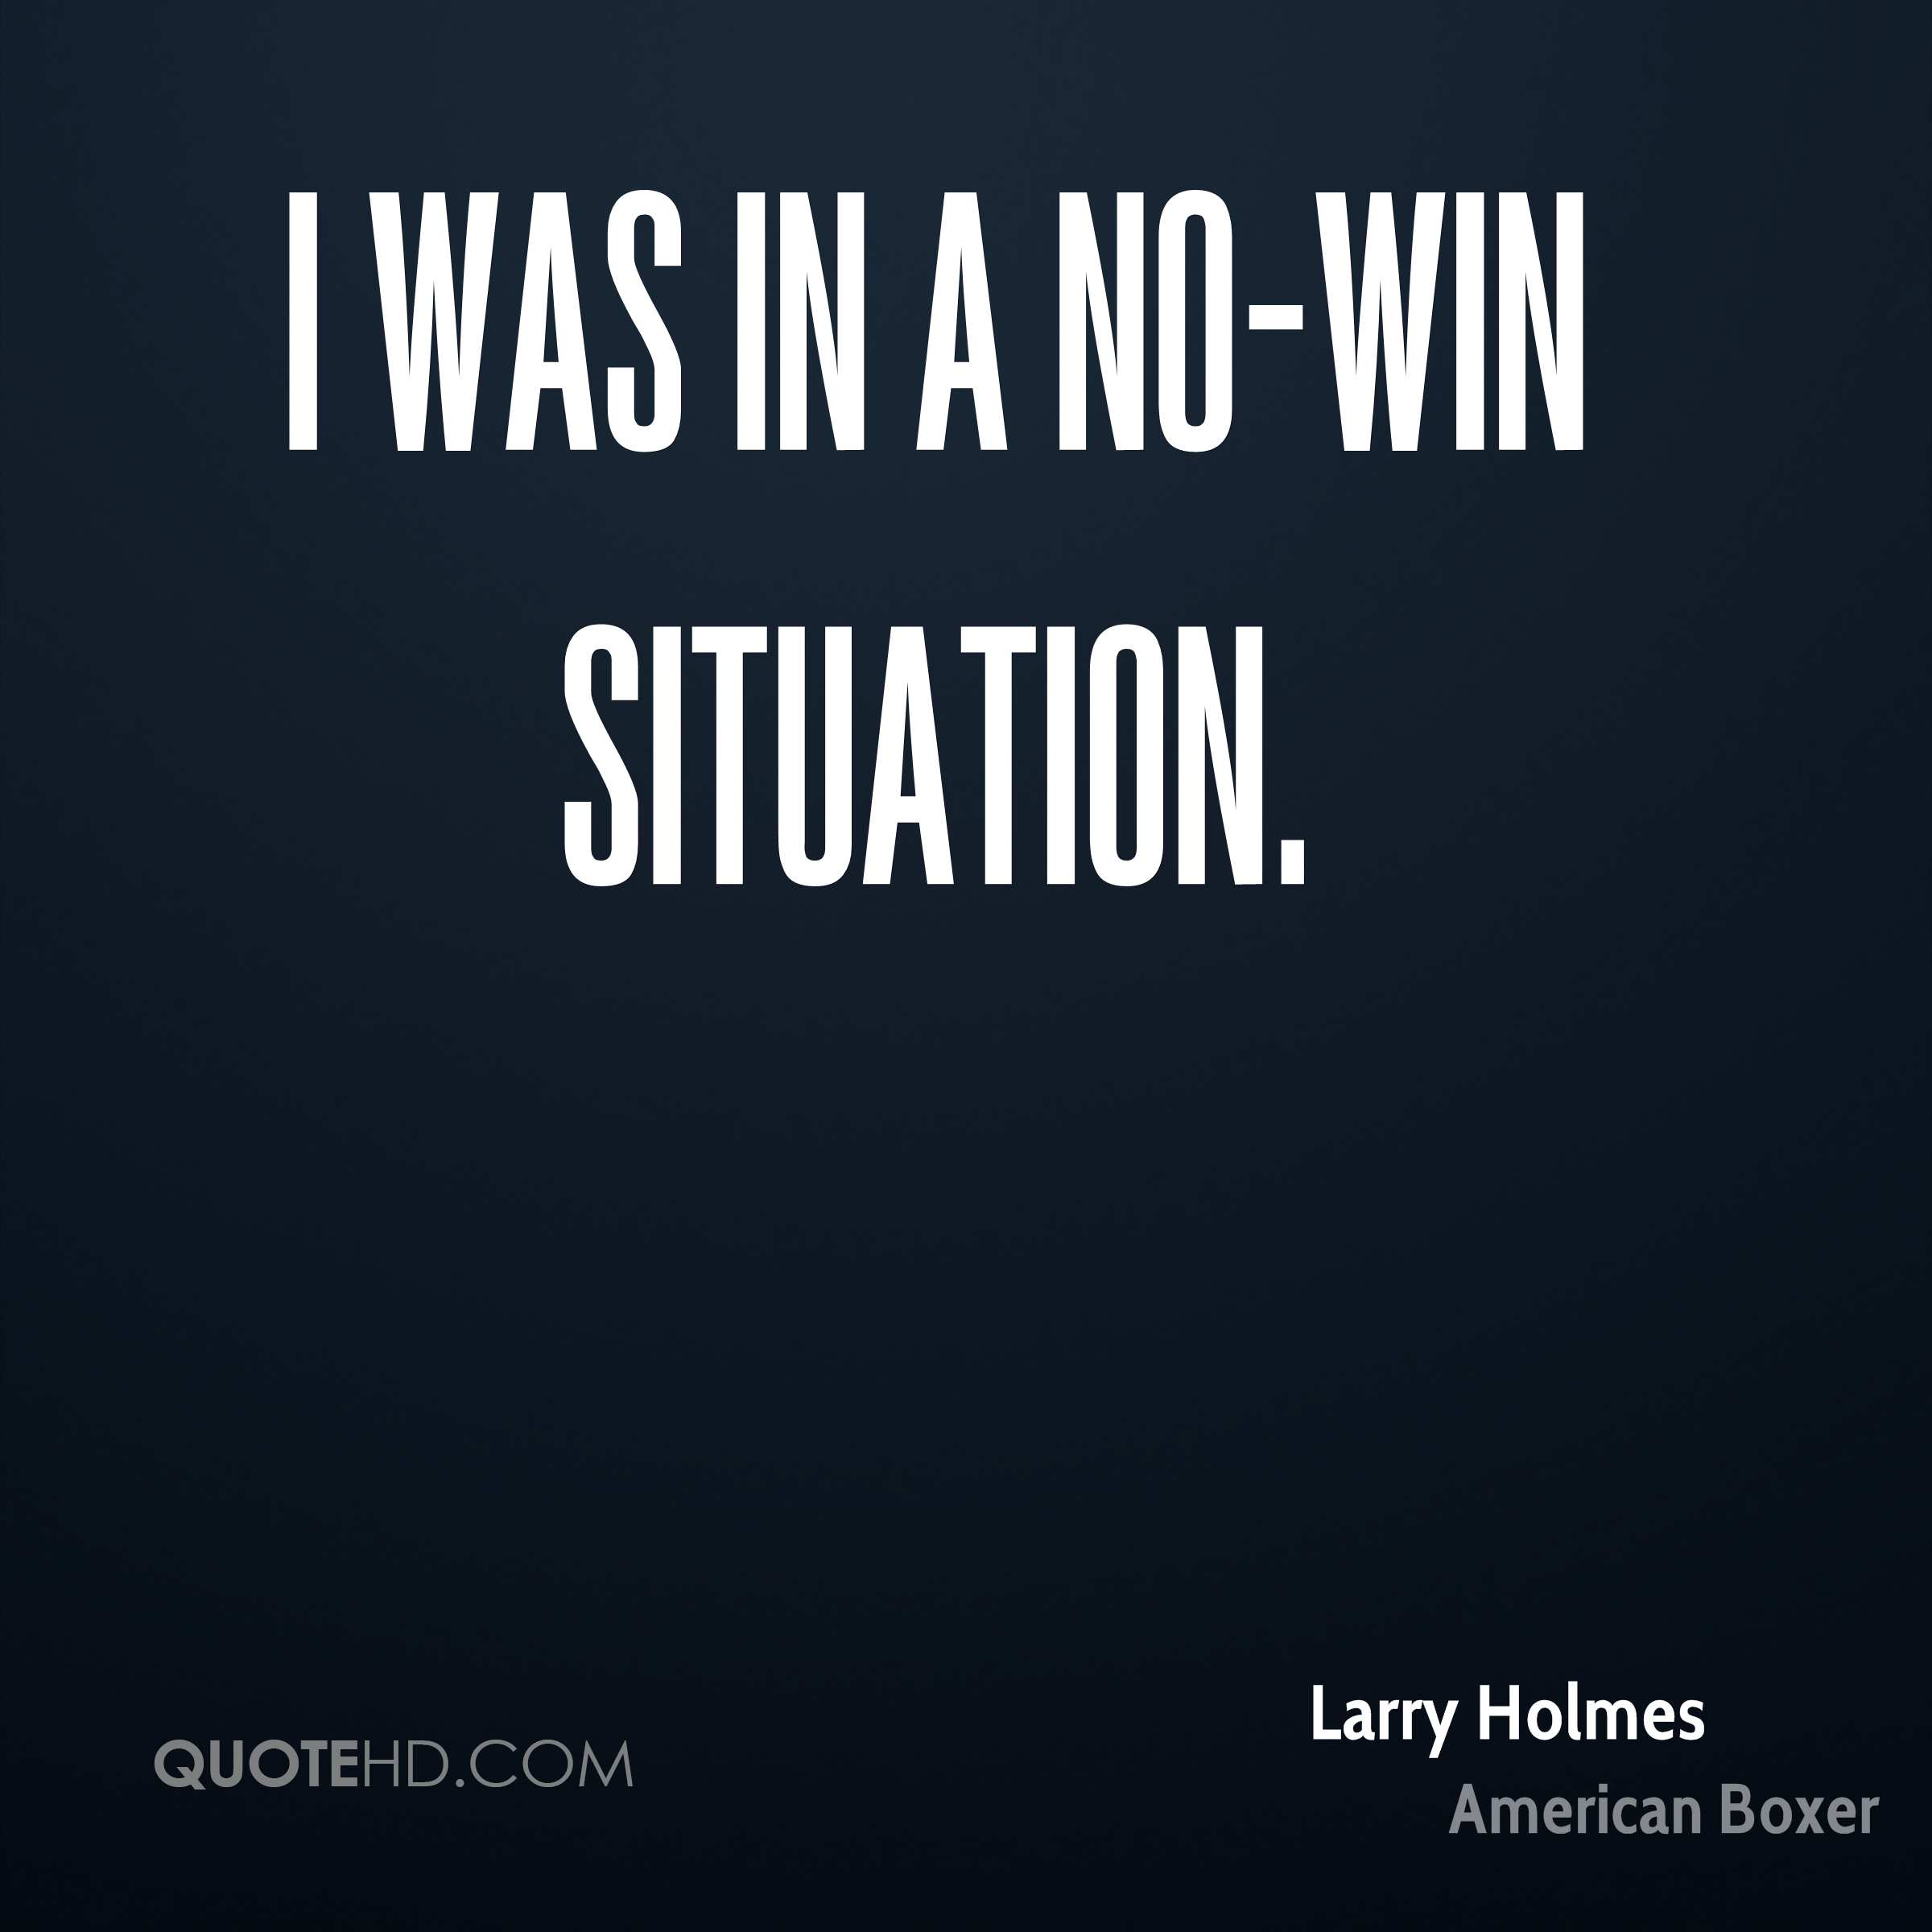 no win situations Definition : no-win scenarios - when you are manipulated into choosing between two bad options damned if you do and damned if you don't also known as a double bind misery loves company, which is why it is so common for a personality-disordered individual who is feeling strong negative emotions s.